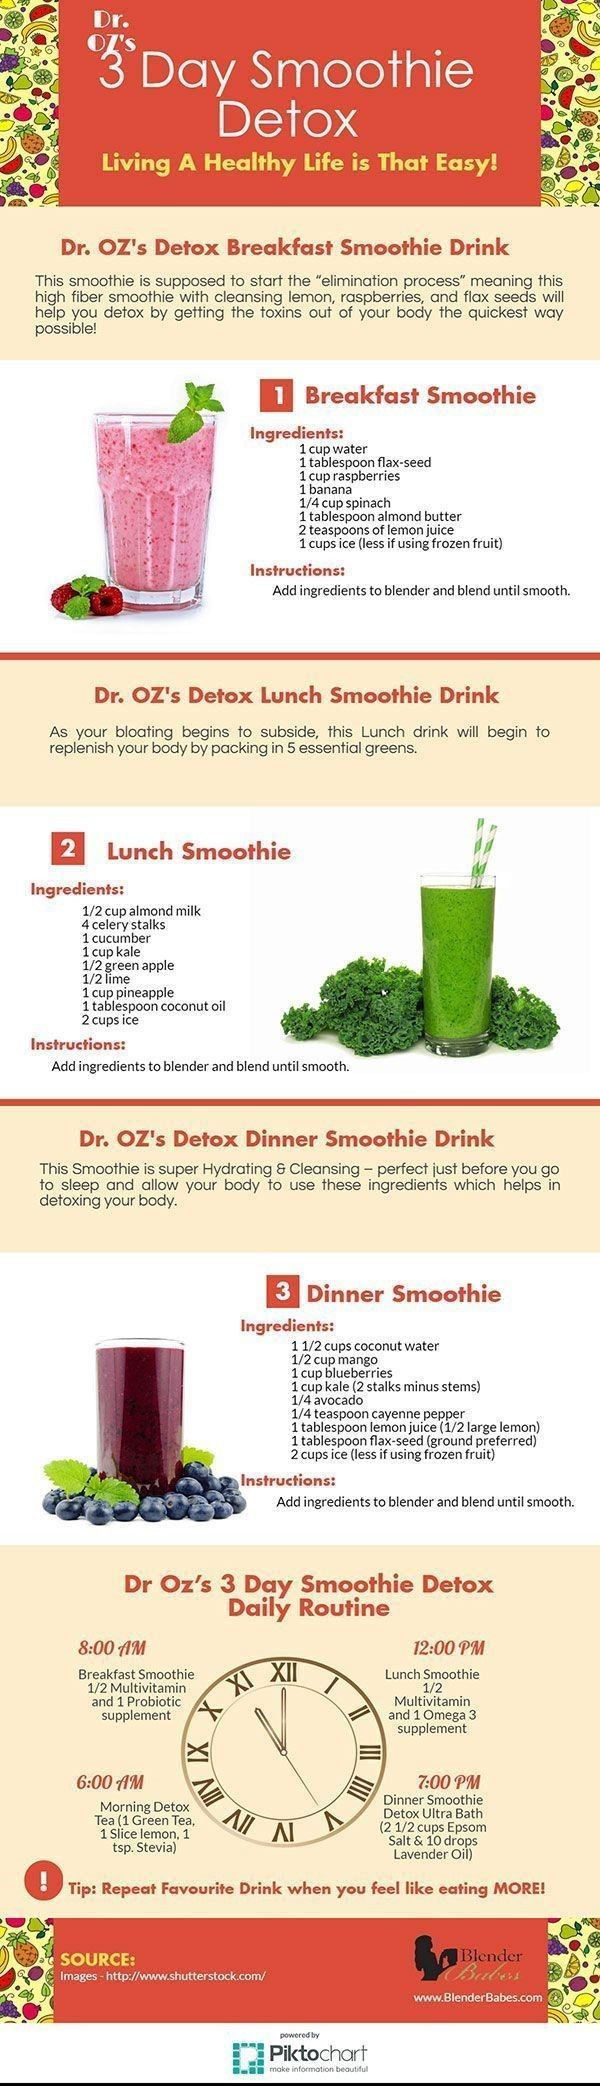 Dr Oz Smoothie Detox Recipes - a 3 Day Smoothie Cleanse with healthy smoothies for breakfast, lunch and dinner. Click for a printable one sheet http://eatdojo.com/healthy-smoothies-weightloss-detox-clean/